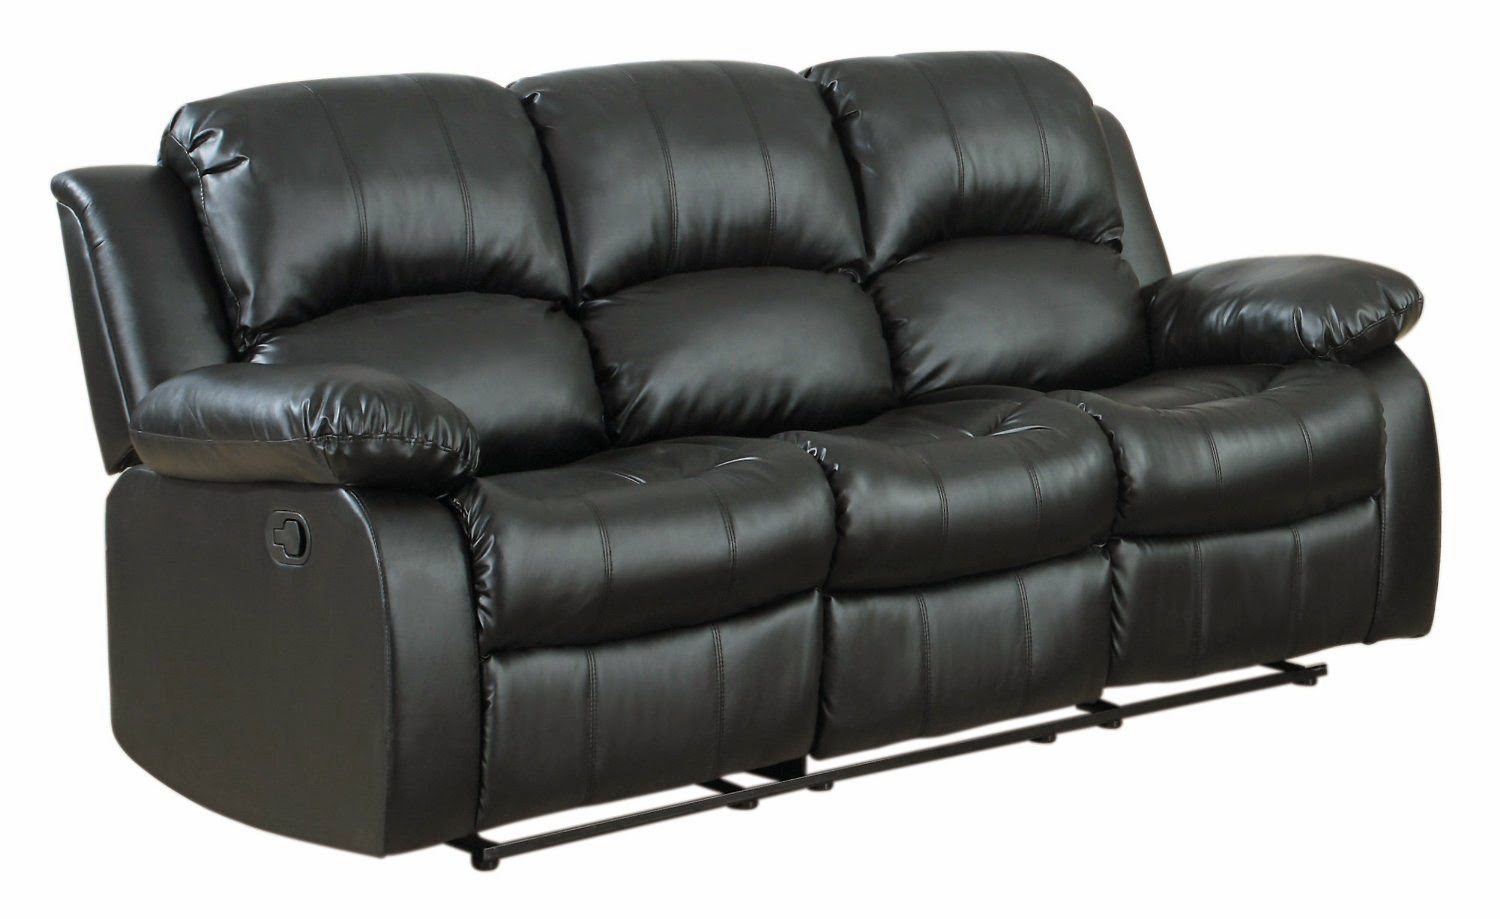 Cheap Black Leather Recliner Sofas